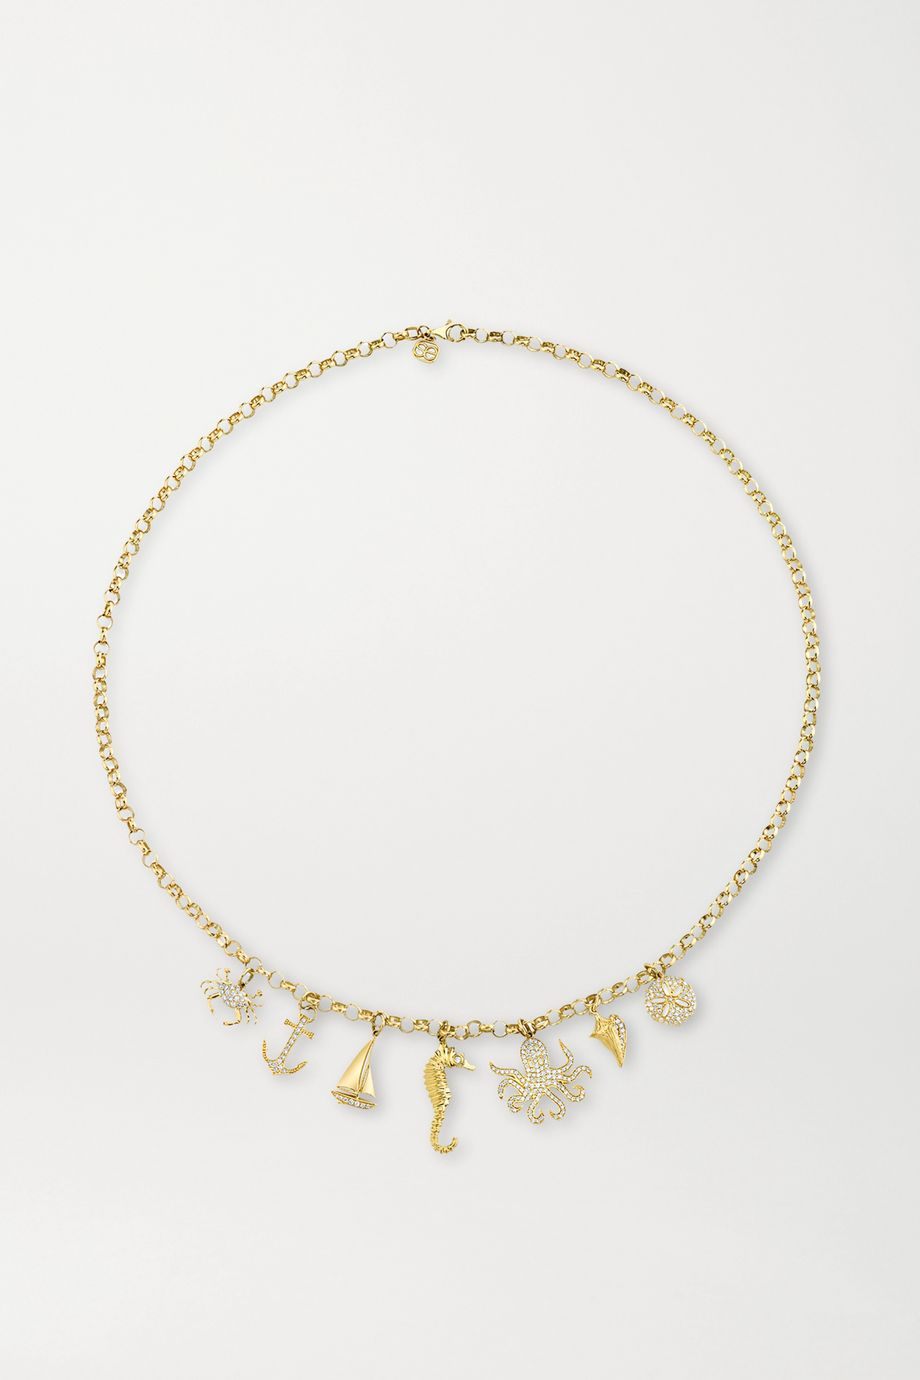 Sydney Evan Nautical 14-karat gold diamond necklace